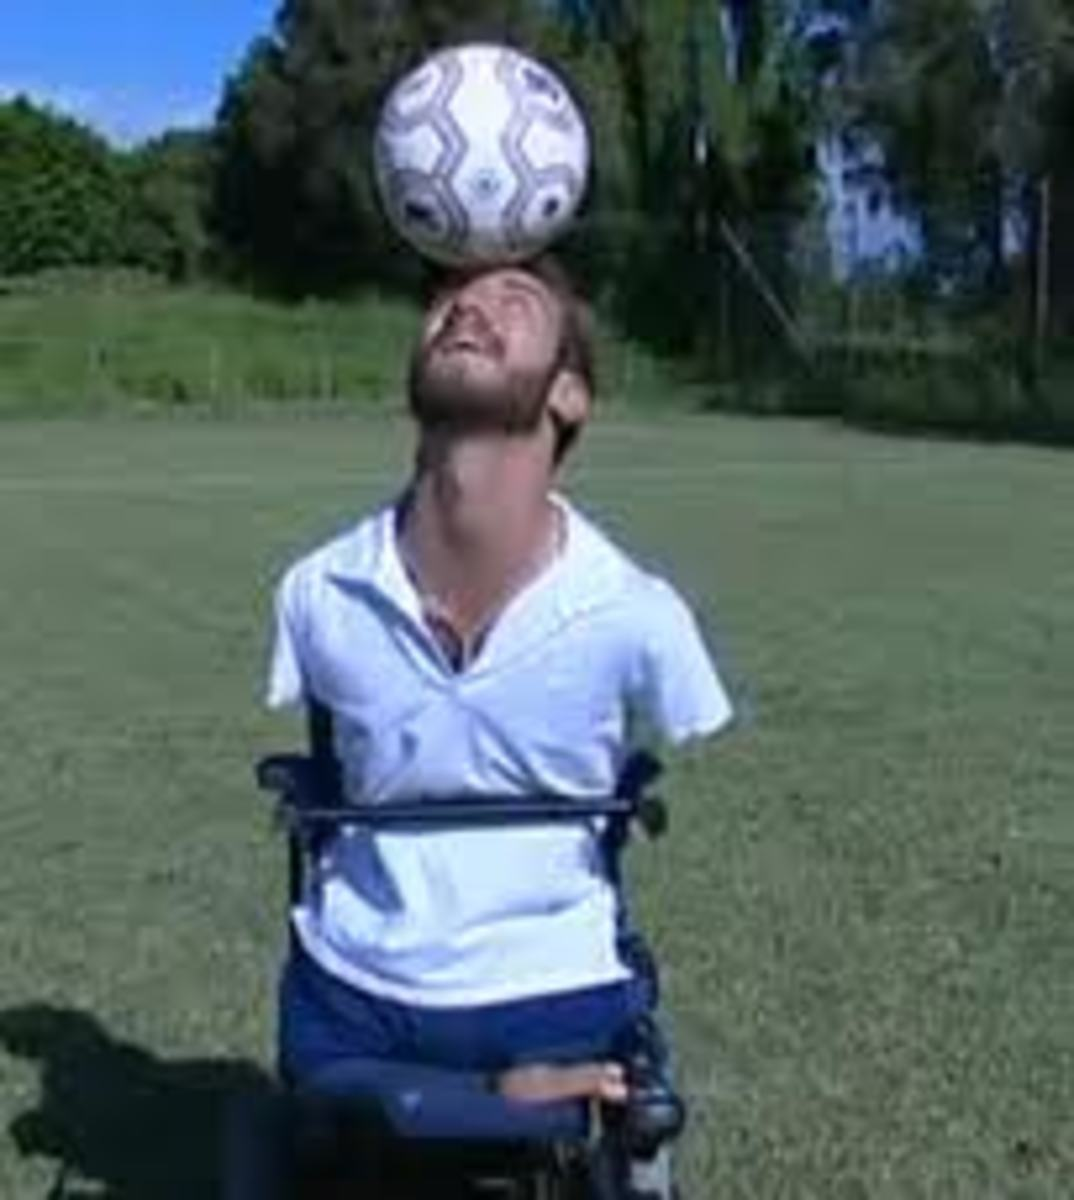 Playing with a soccer ball